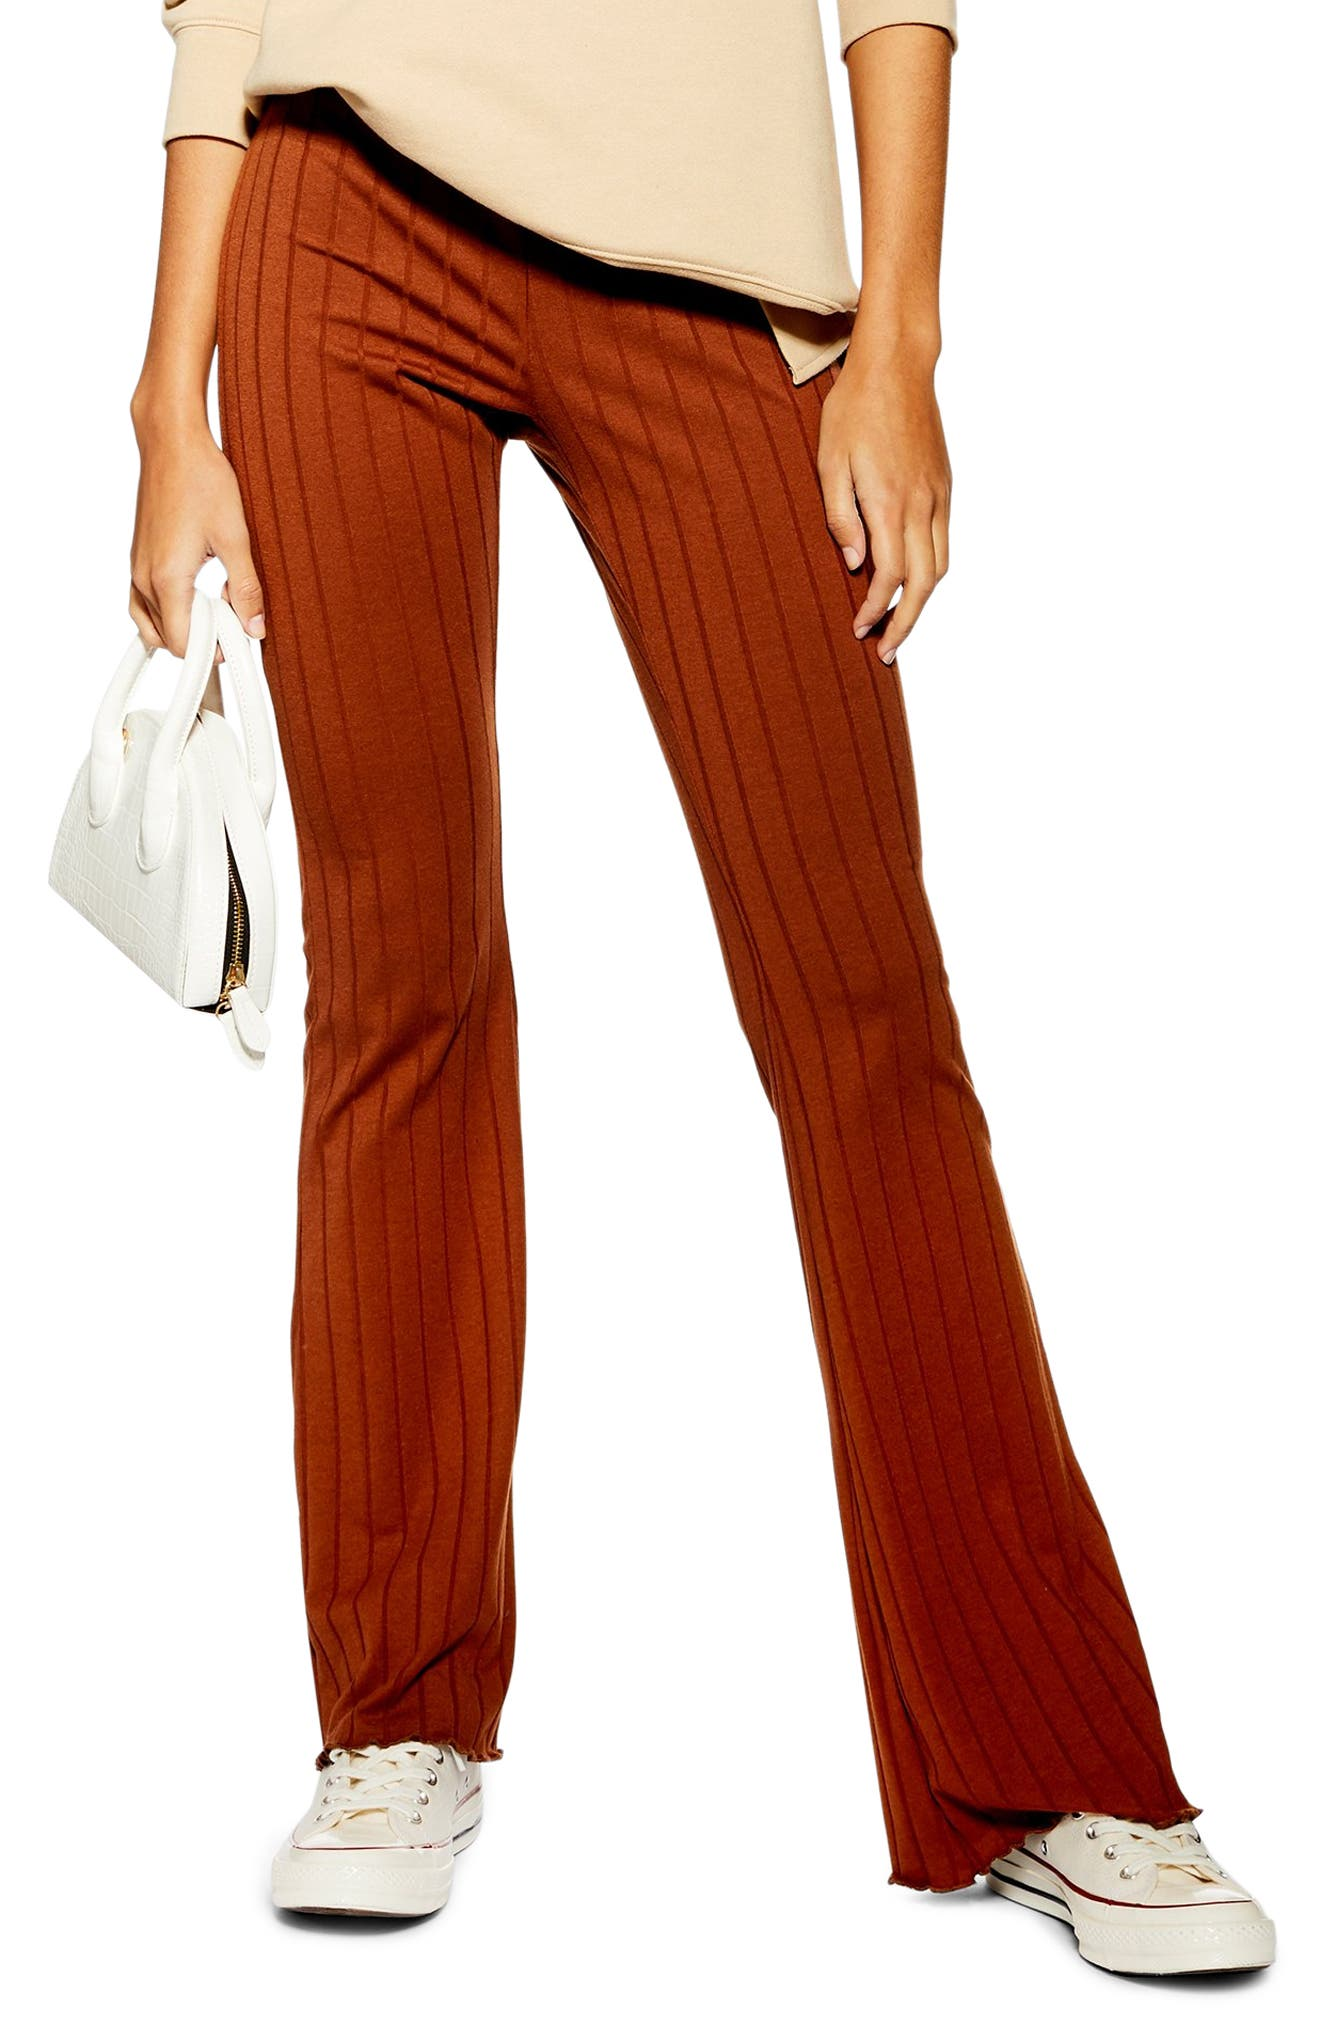 Topshop Ribbed Babylock Flared Pants, US (fits like 0) - Brown